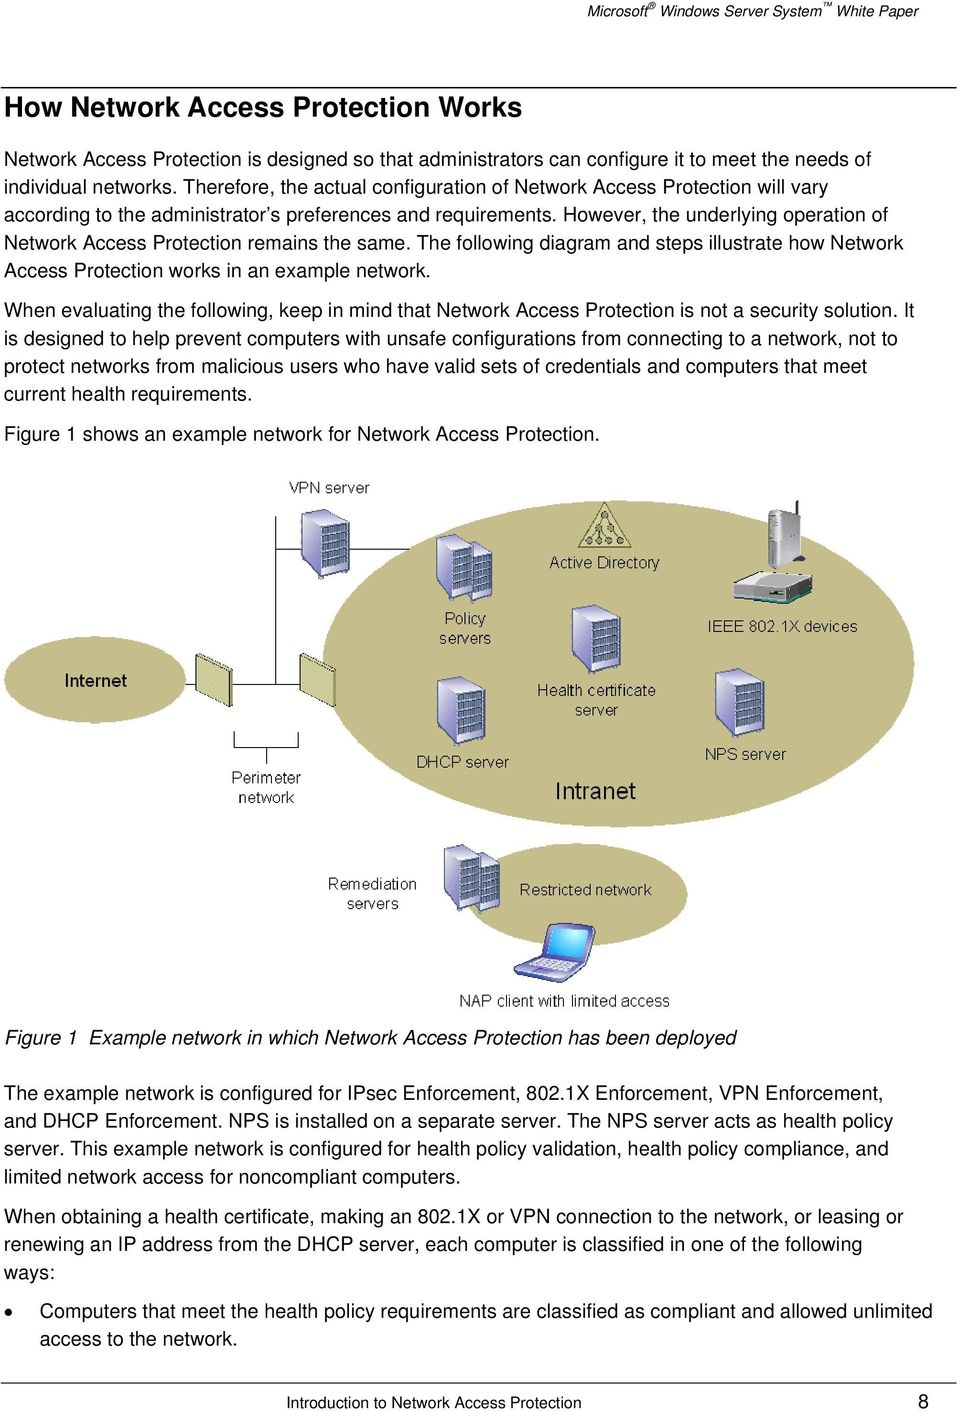 However, the underlying operation of Network Access Protection remains the same. The following diagram and steps illustrate how Network Access Protection works in an example network.